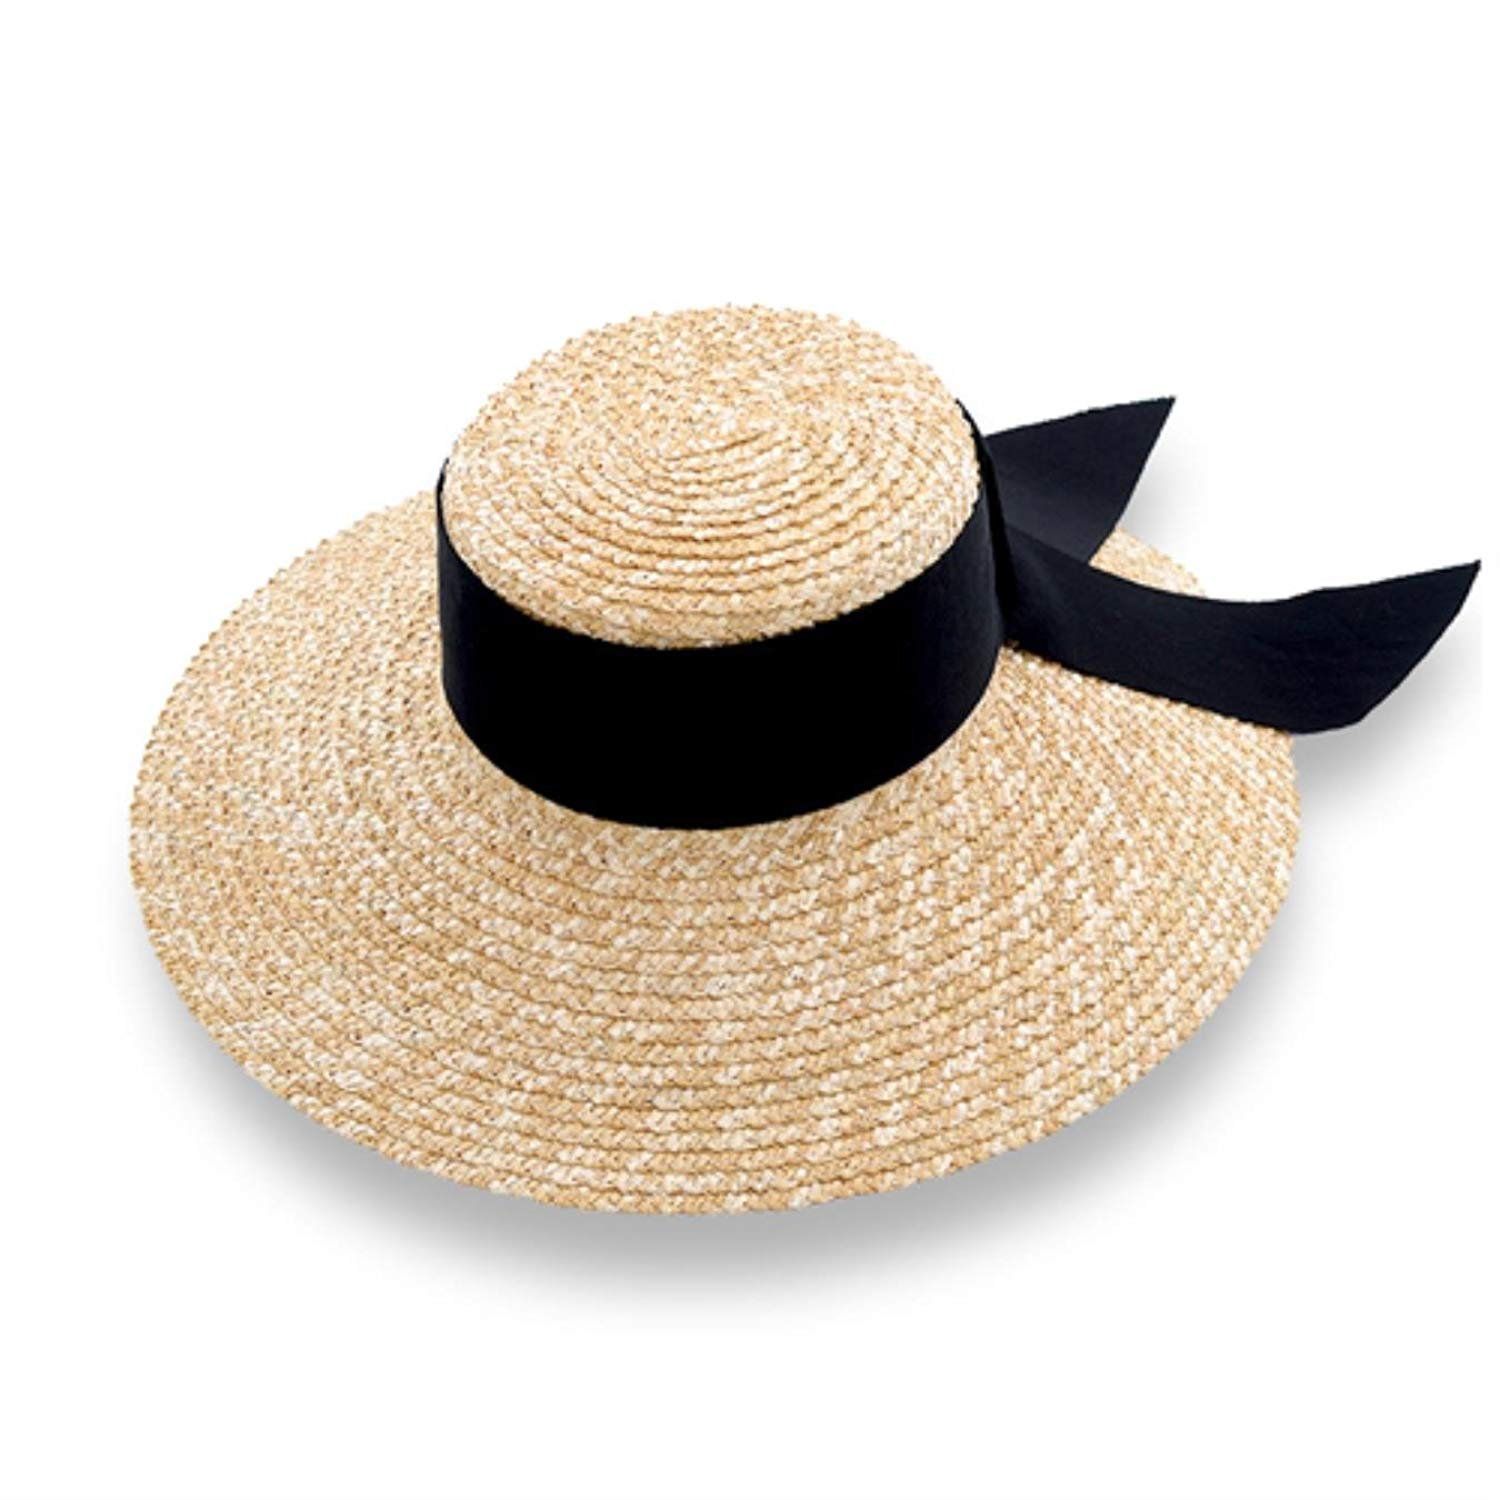 bf5ae7ce Get Quotations · Summer Straw Hat for Women Beach Hat Casual Handmade  Ribbon Bowknot Hat Lady Flat-top